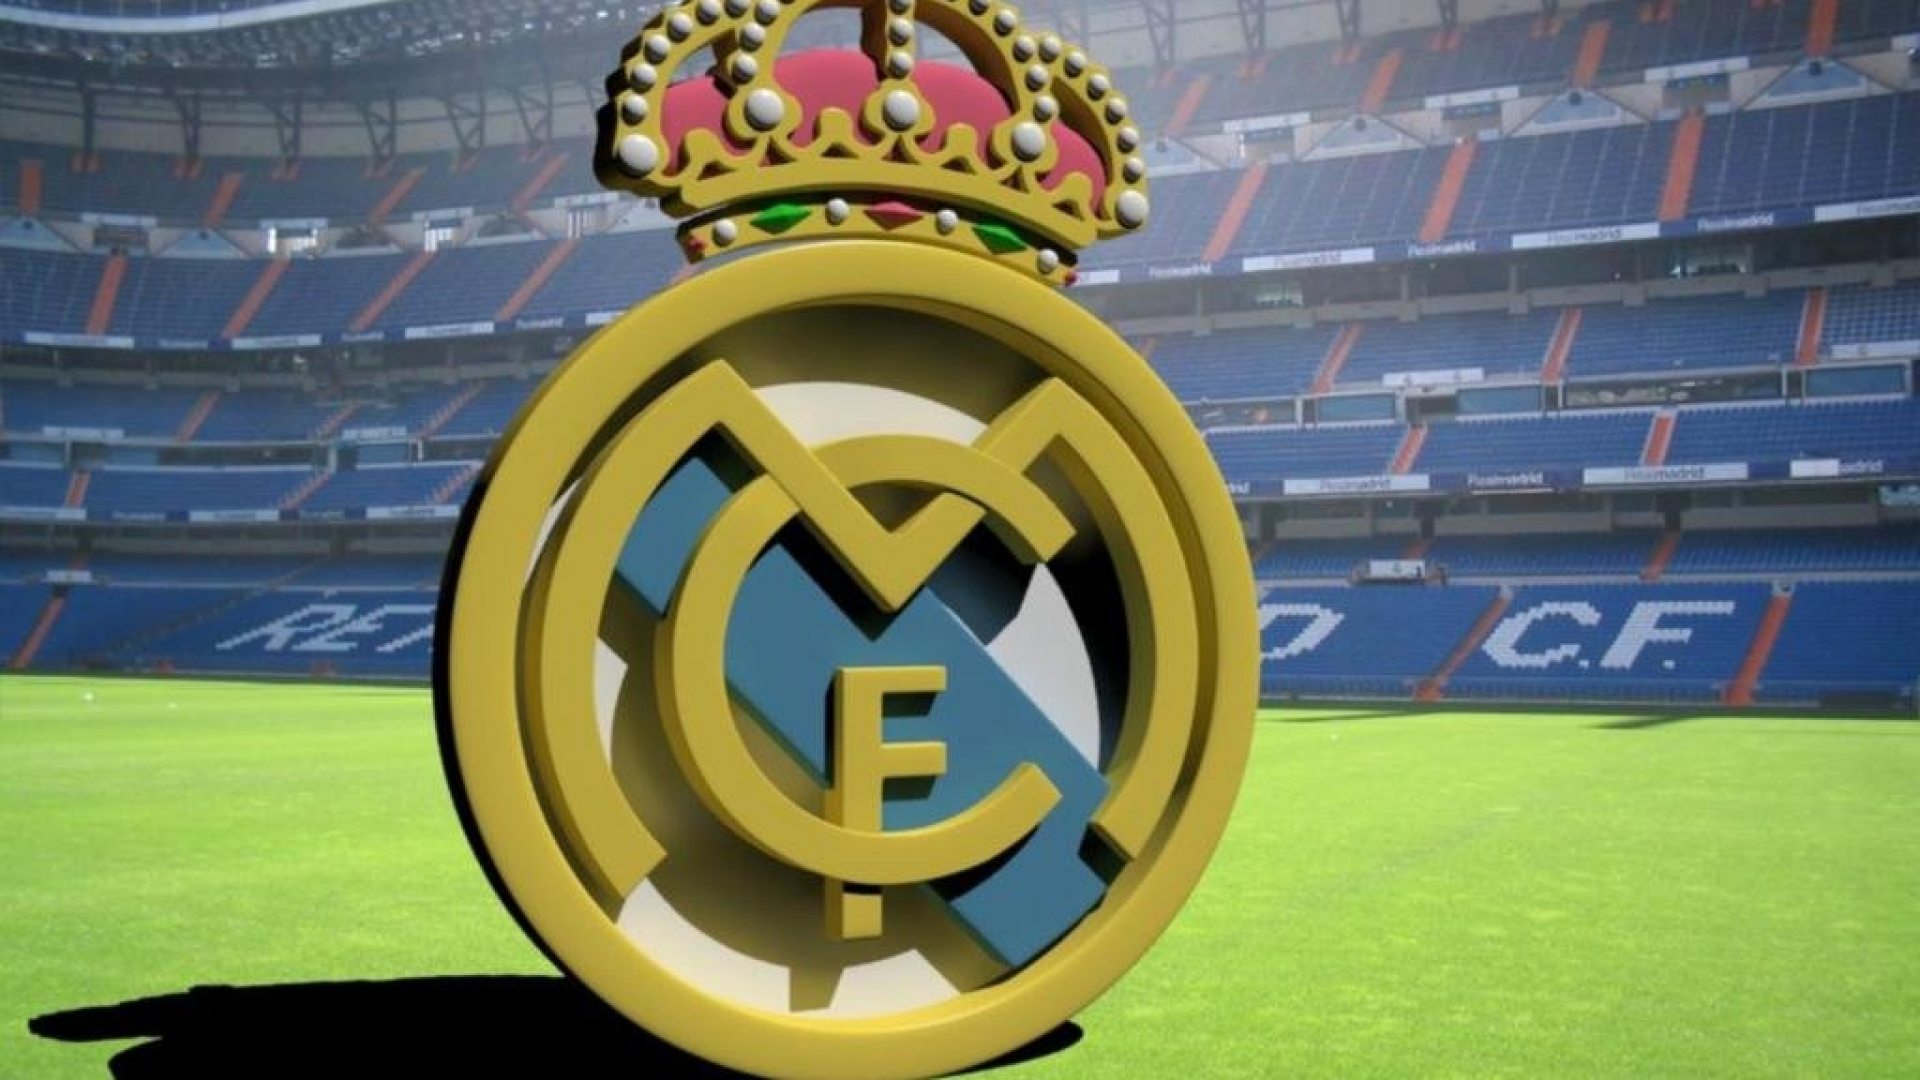 Real Madrid Wallpaper Hd Wallpapers